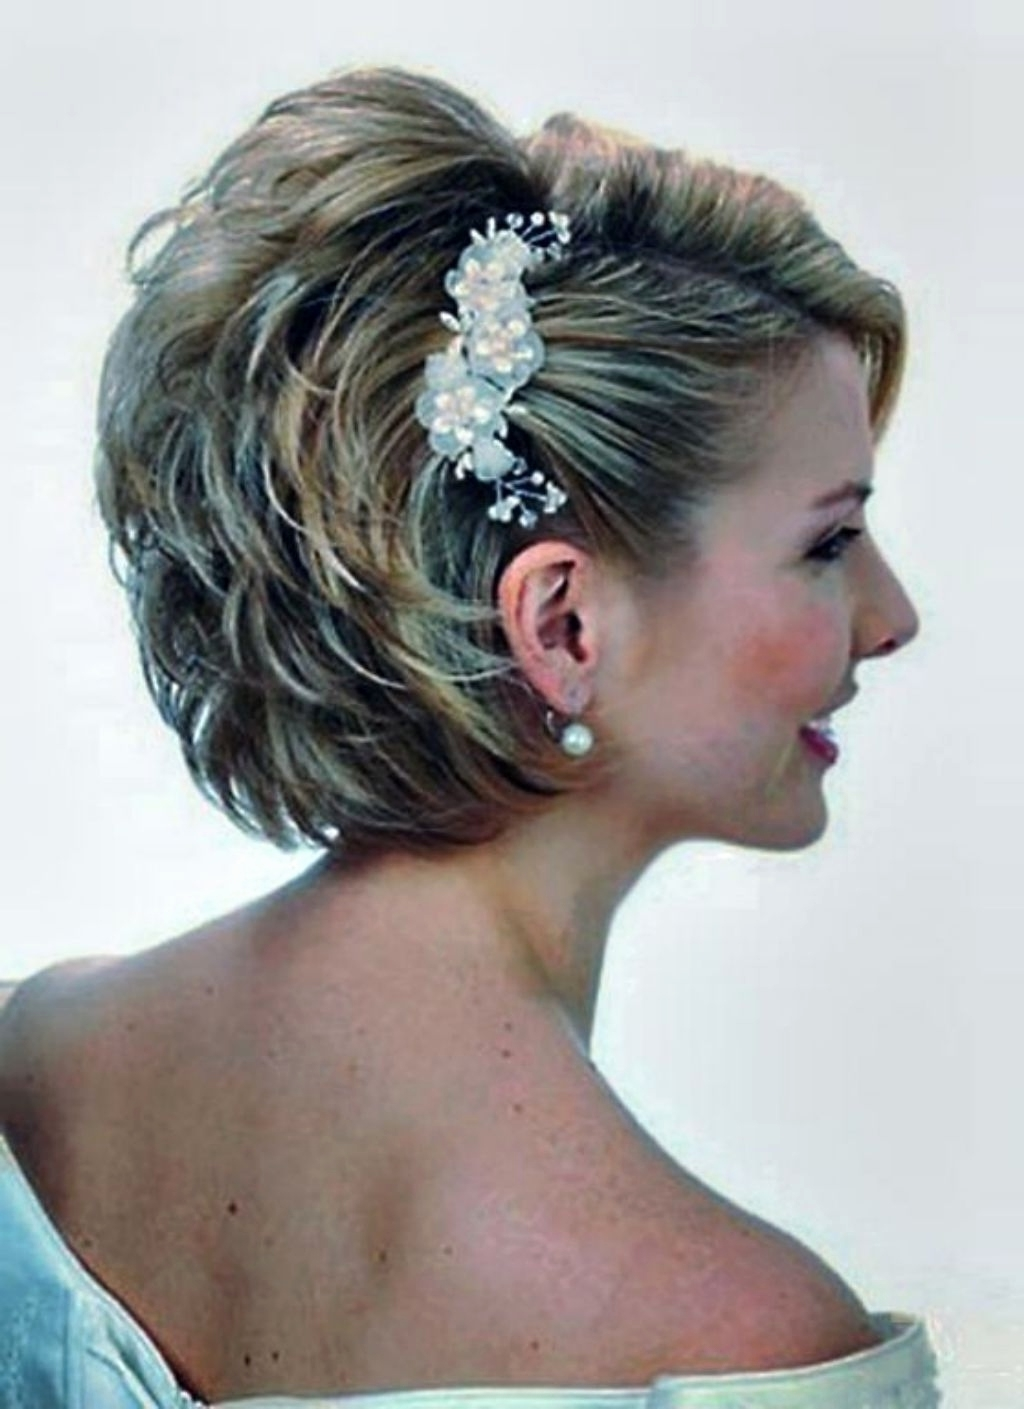 Updo Hairstyles For Mother Of The Groom Wedding Bride Decor And Inside 2017 Mother Of Groom Hairstyles For Wedding (Gallery 12 of 15)